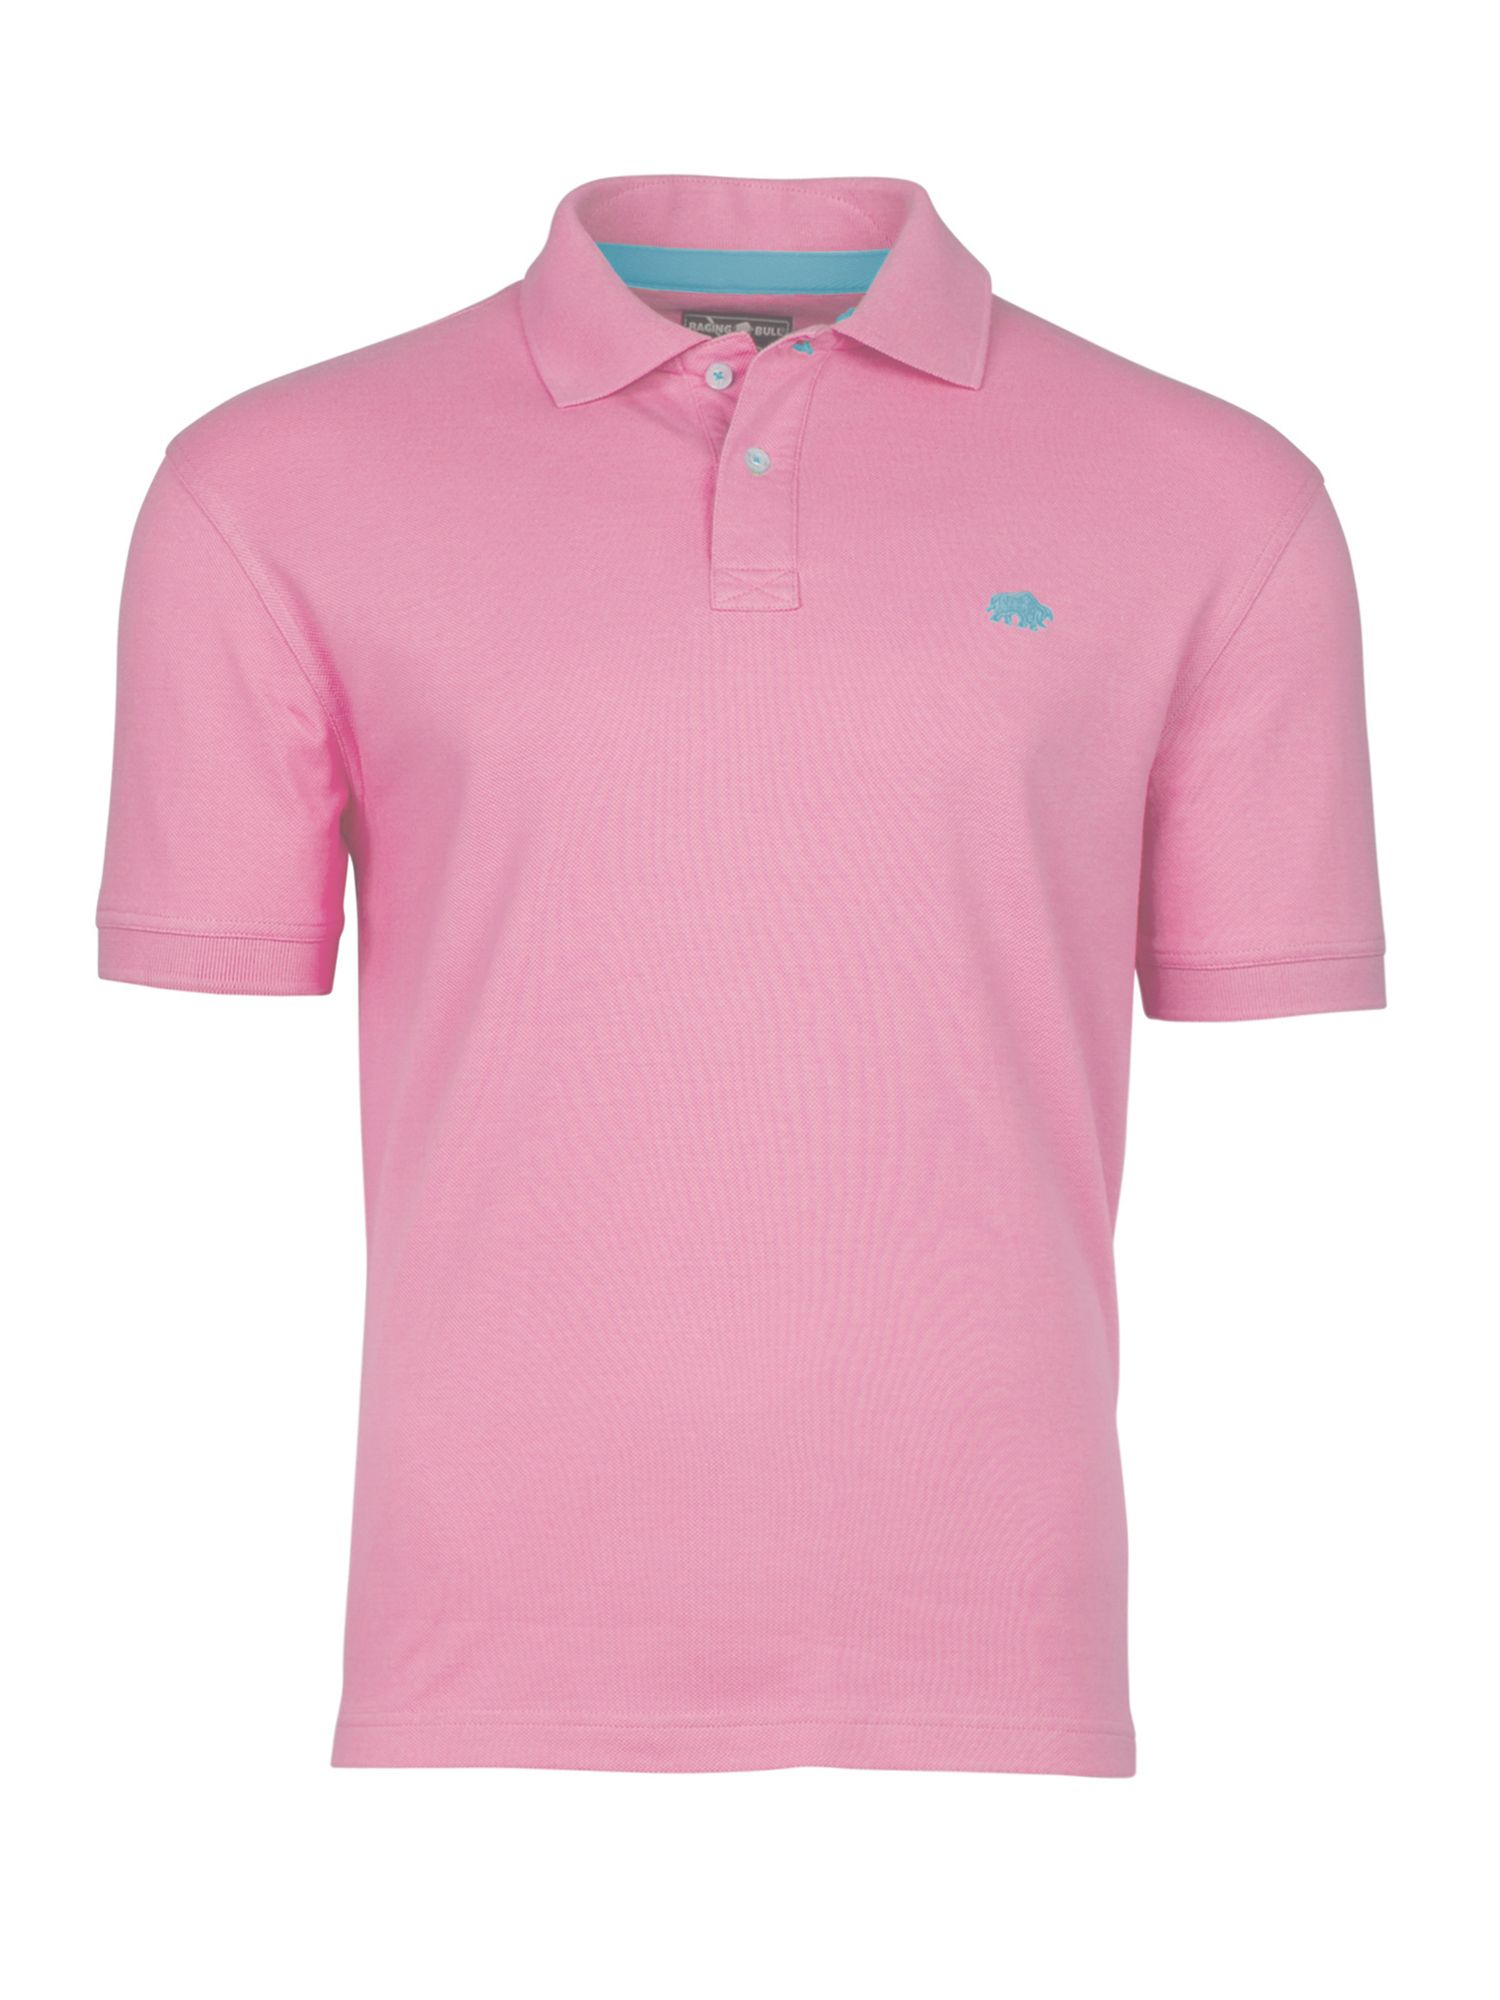 Men's Raging Bull New Signature Polo, Pink